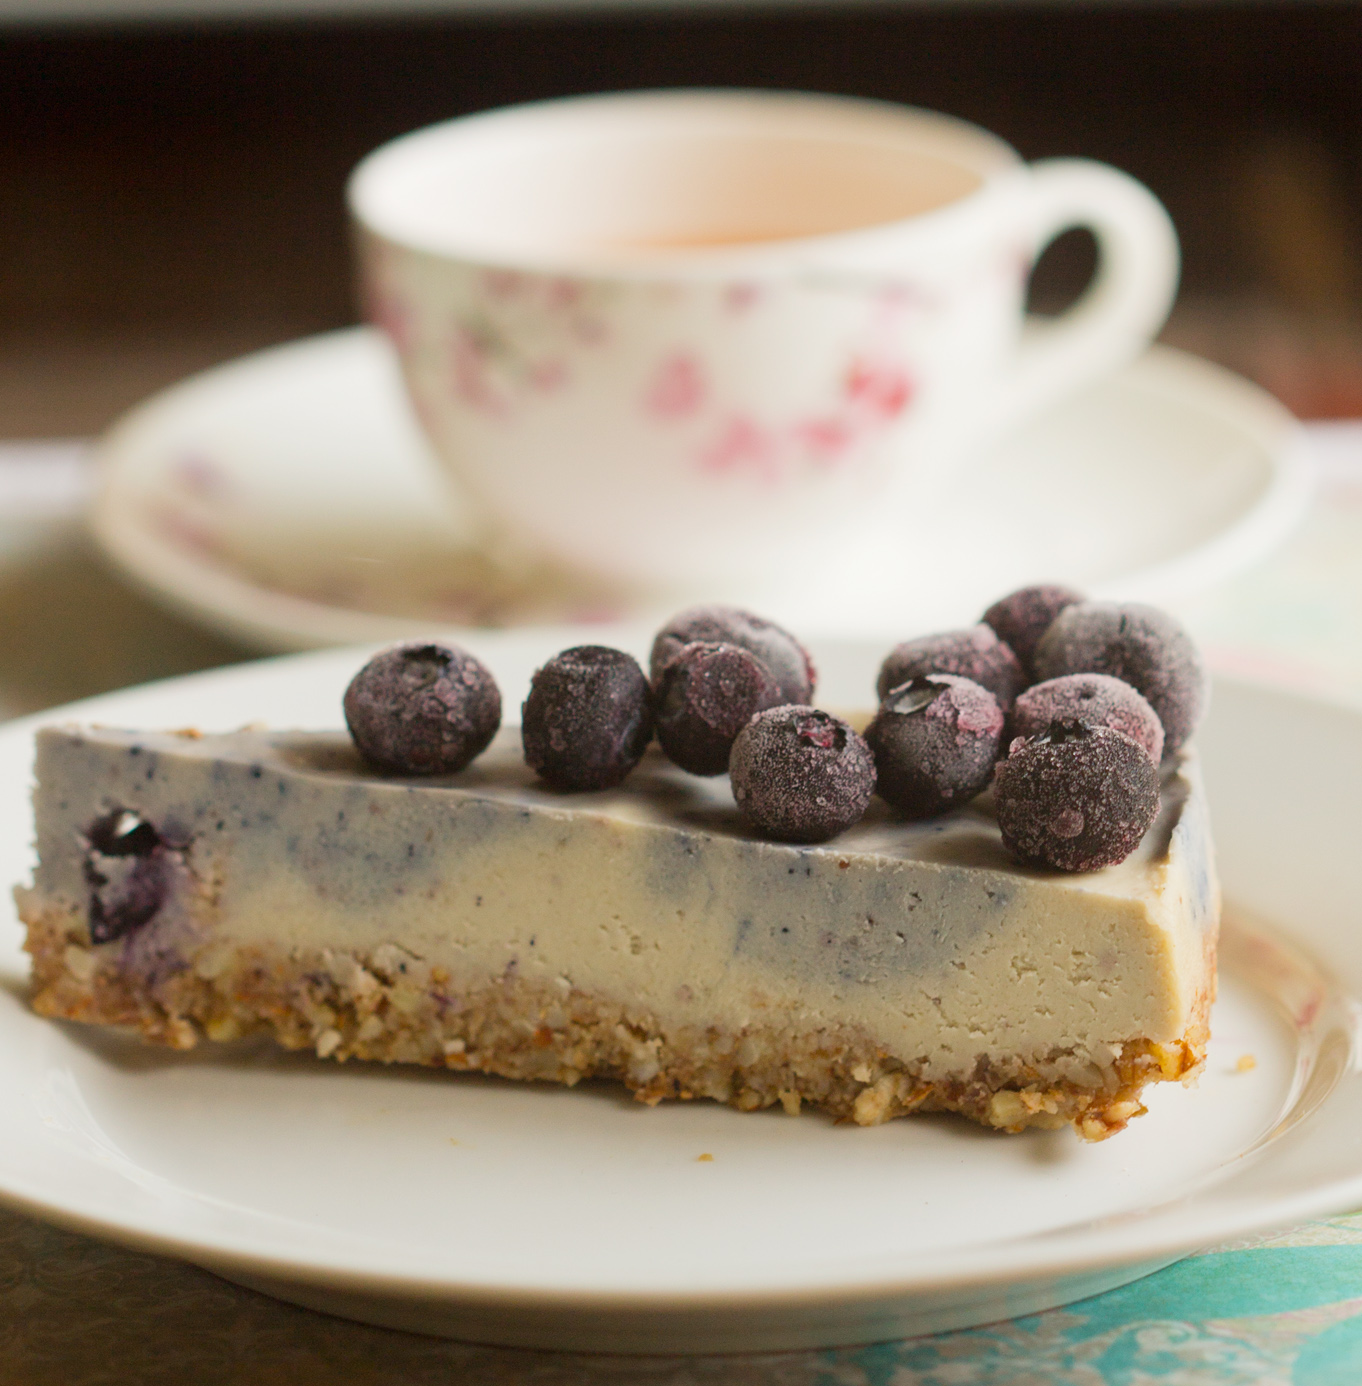 How to Make a Raw Cheesecake